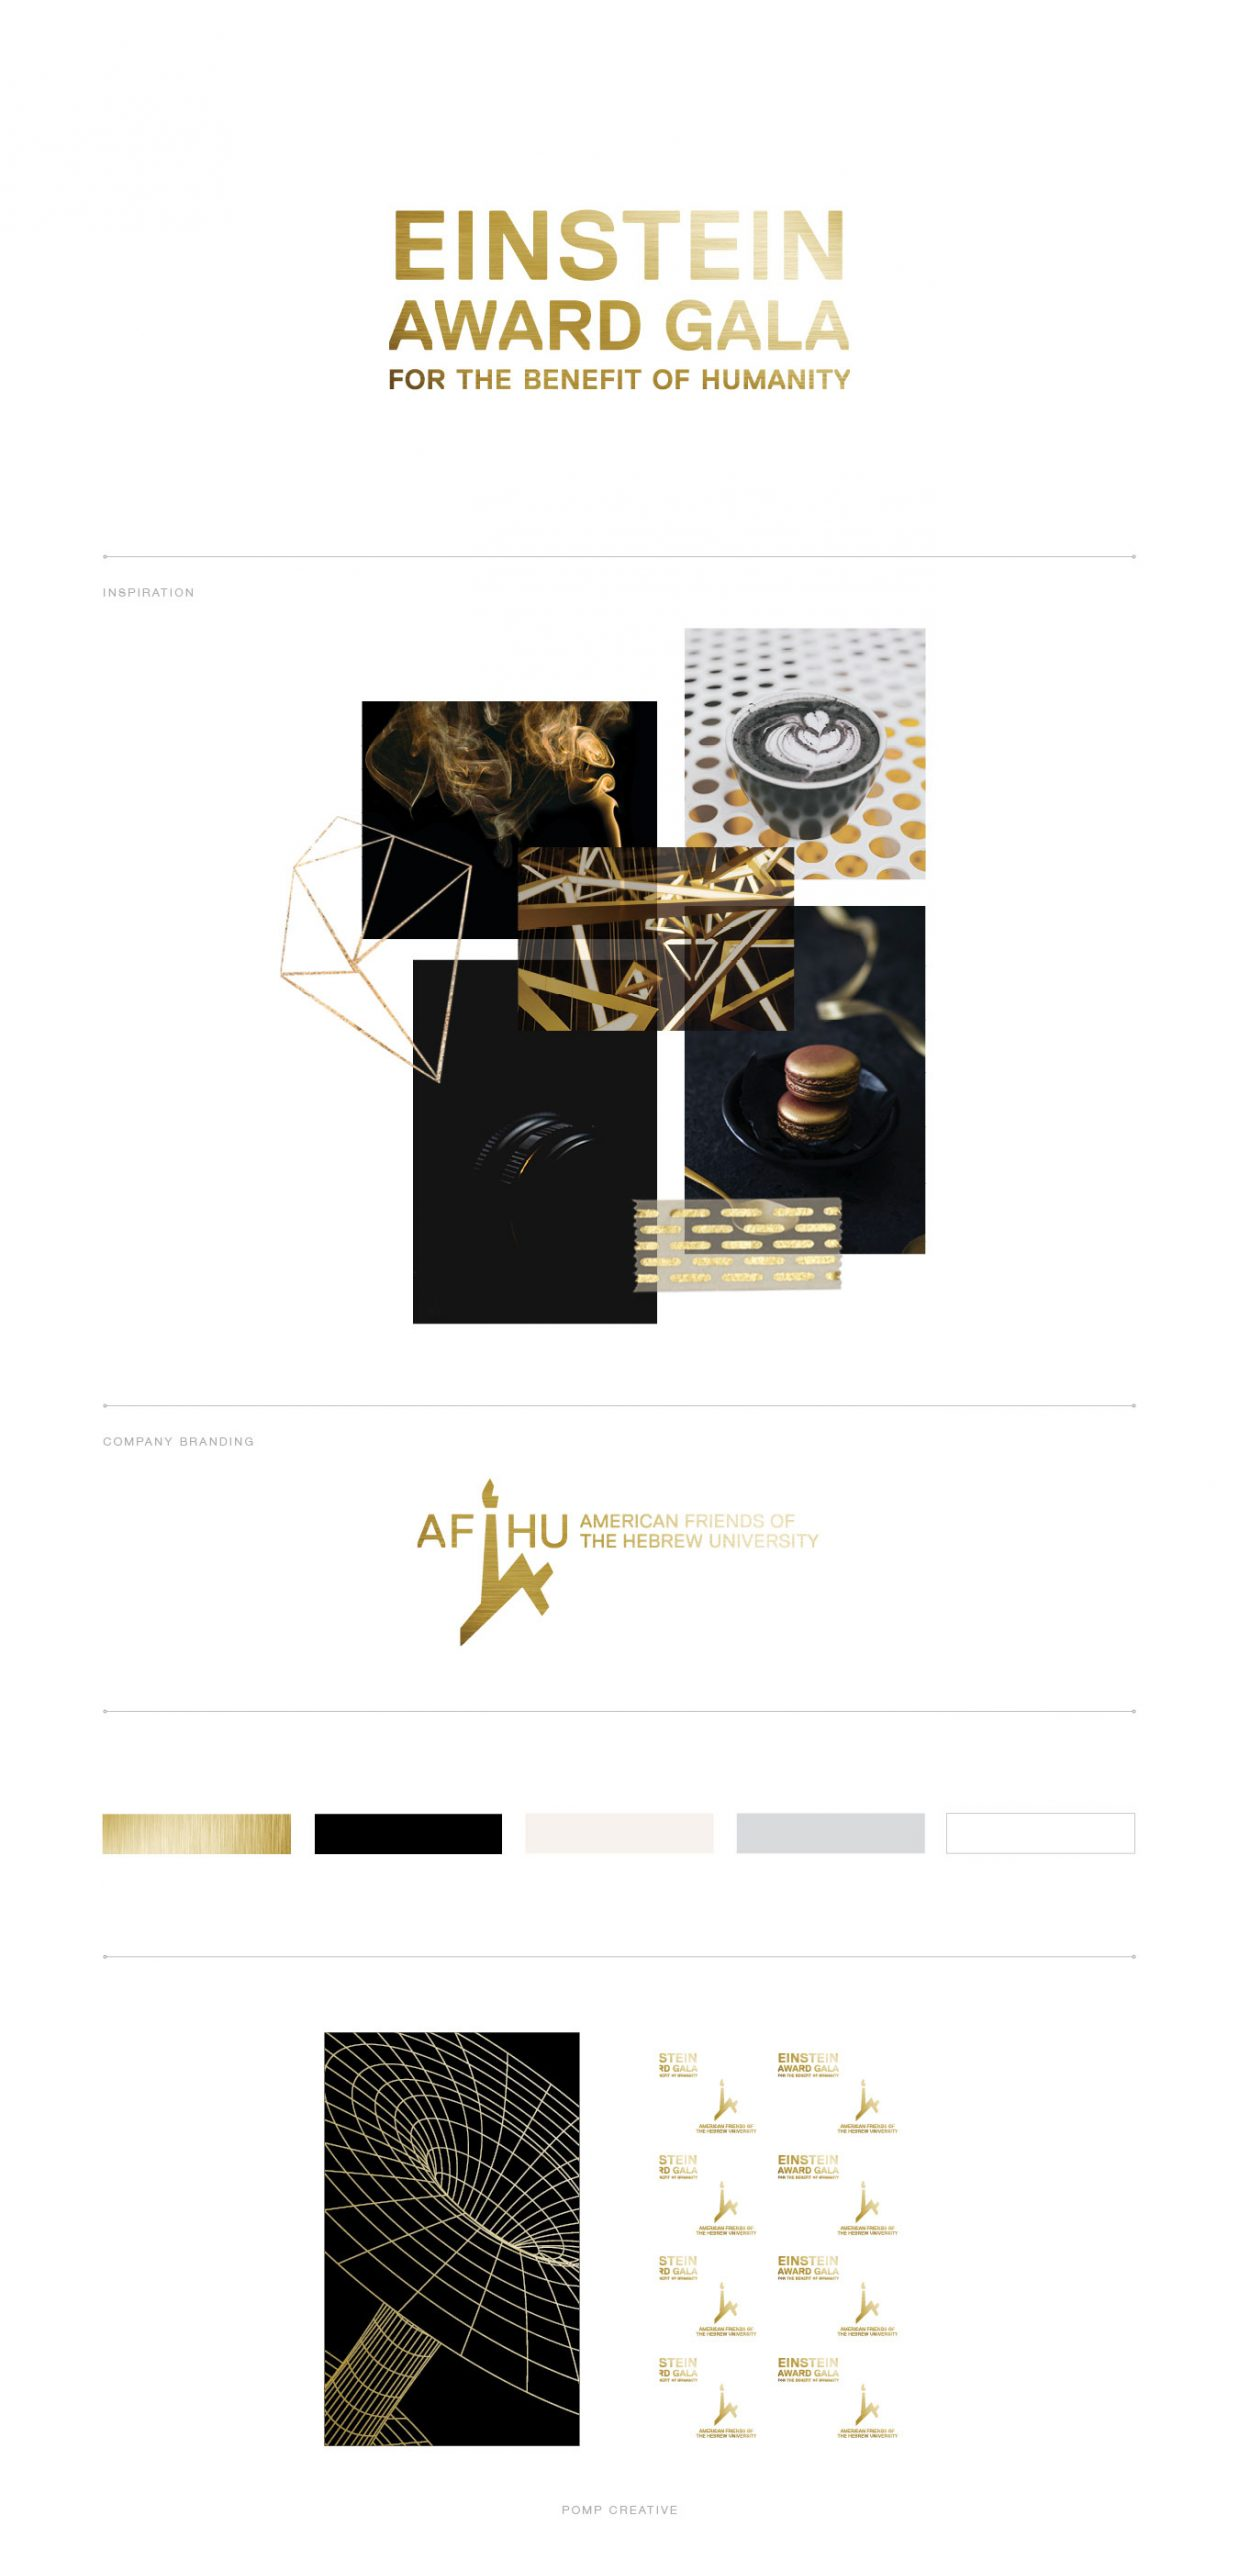 gala; invitation; luxury invitation; classy; events; event professional; logo; small business; branding; annapolis; graphic design; washington dc